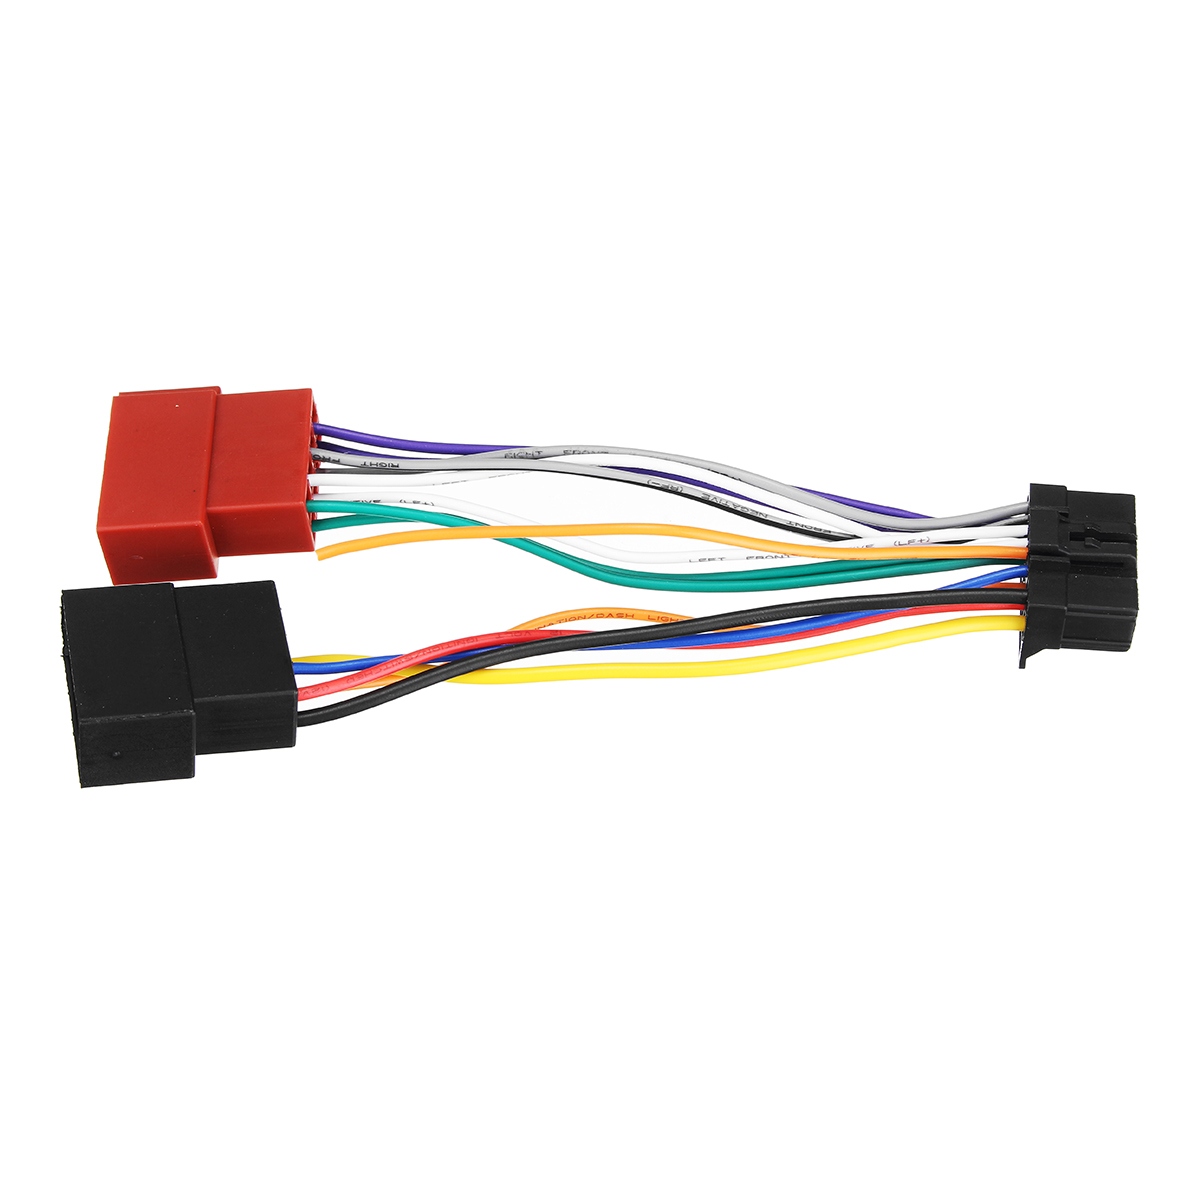 medium resolution of car stereo radio iso wiring harness connector 16 pin pi100 for pioneer 2003 on in cables adapters sockets from automobiles motorcycles on